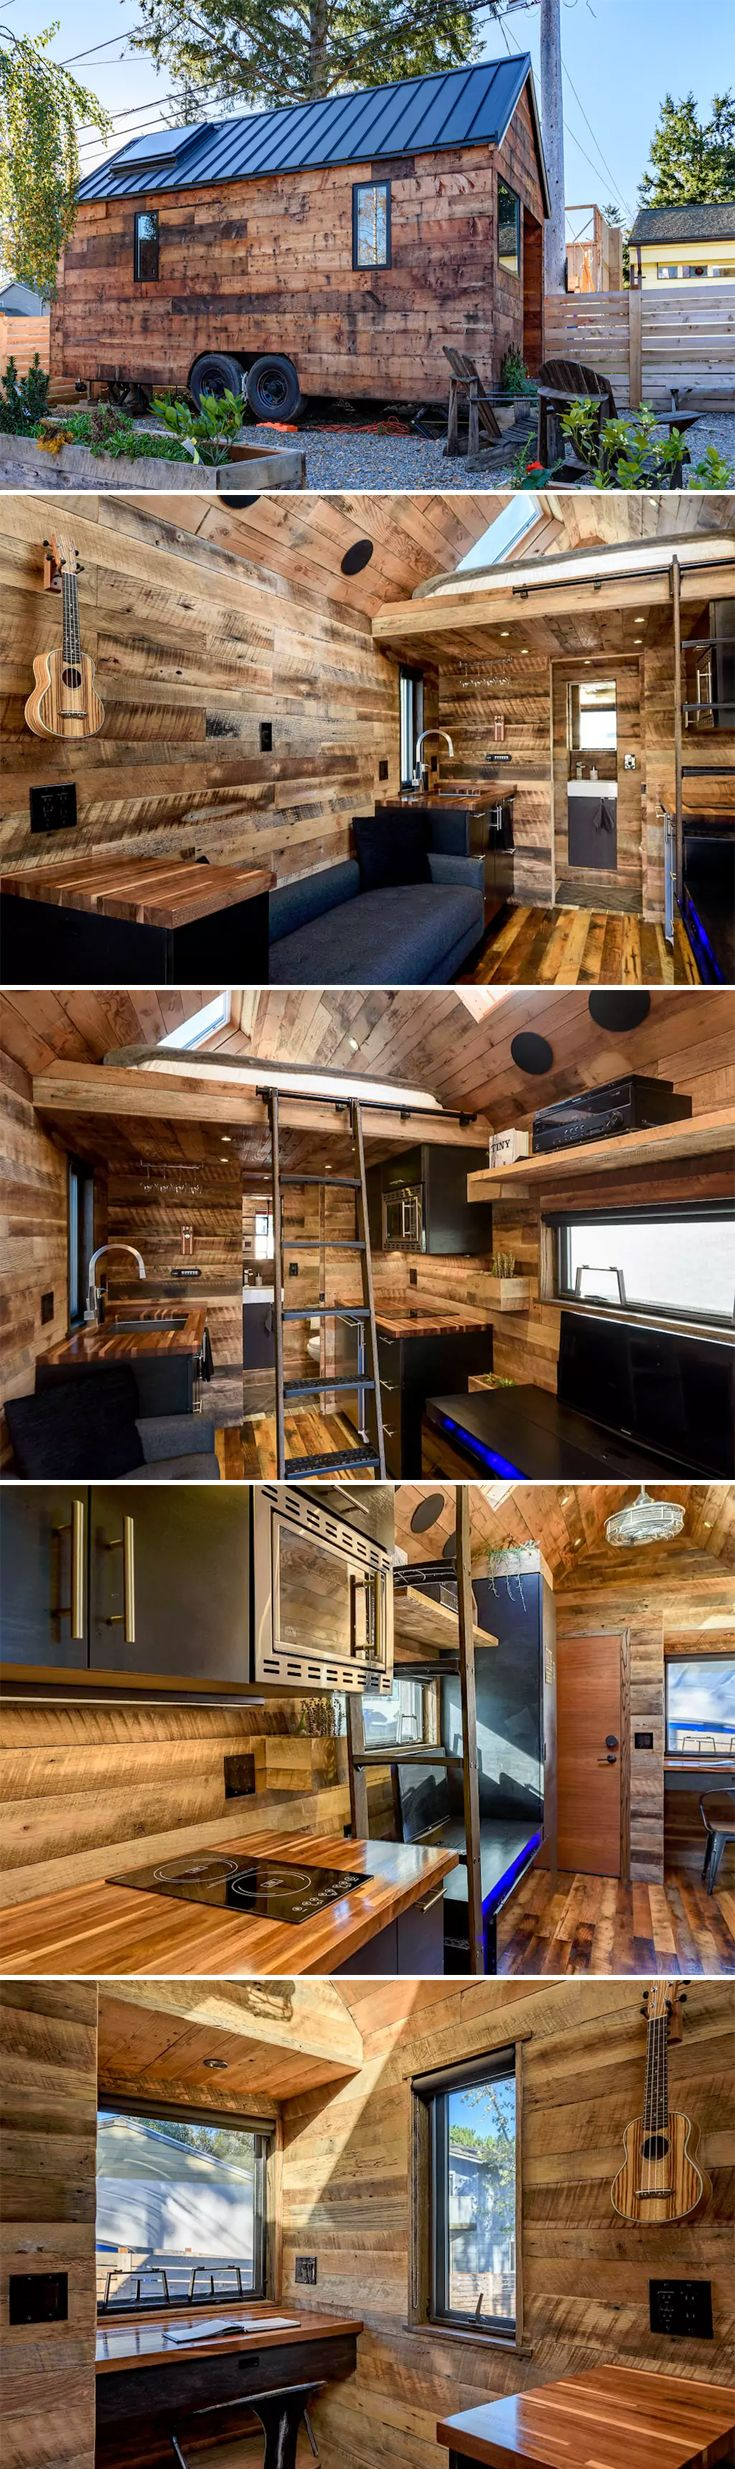 Designed and built by Chad Kuntz, Tipsy the Tiny House is a 180 sq.ft. tiny house on wheels available for nightly rental through Airbnb in West Seattle.